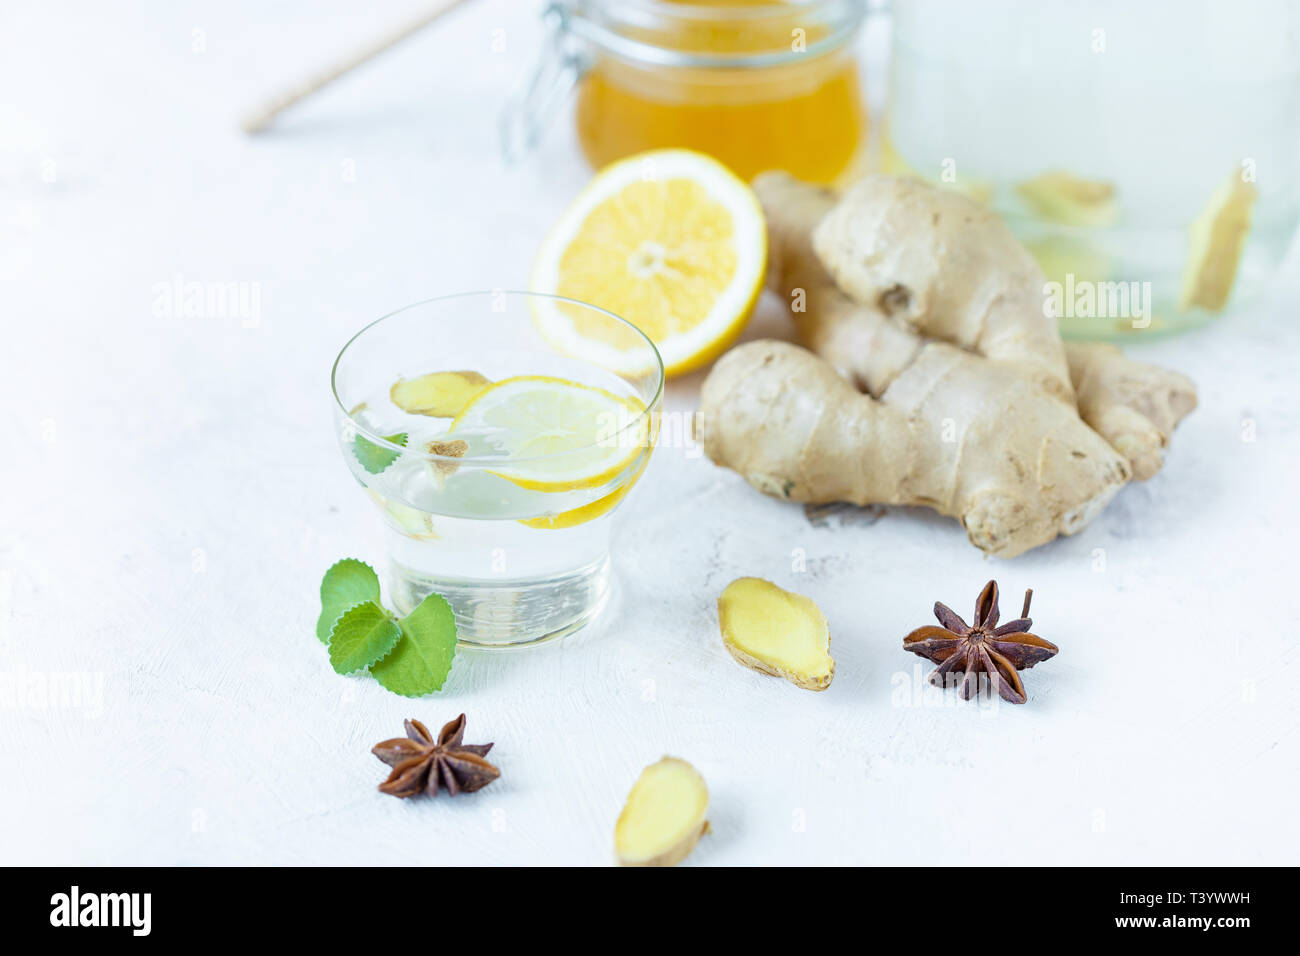 Healthy ginger drink in a cup. Ginger root, honey in a jar, lemon on a white table. Immune Cocktail Copy space - Stock Image